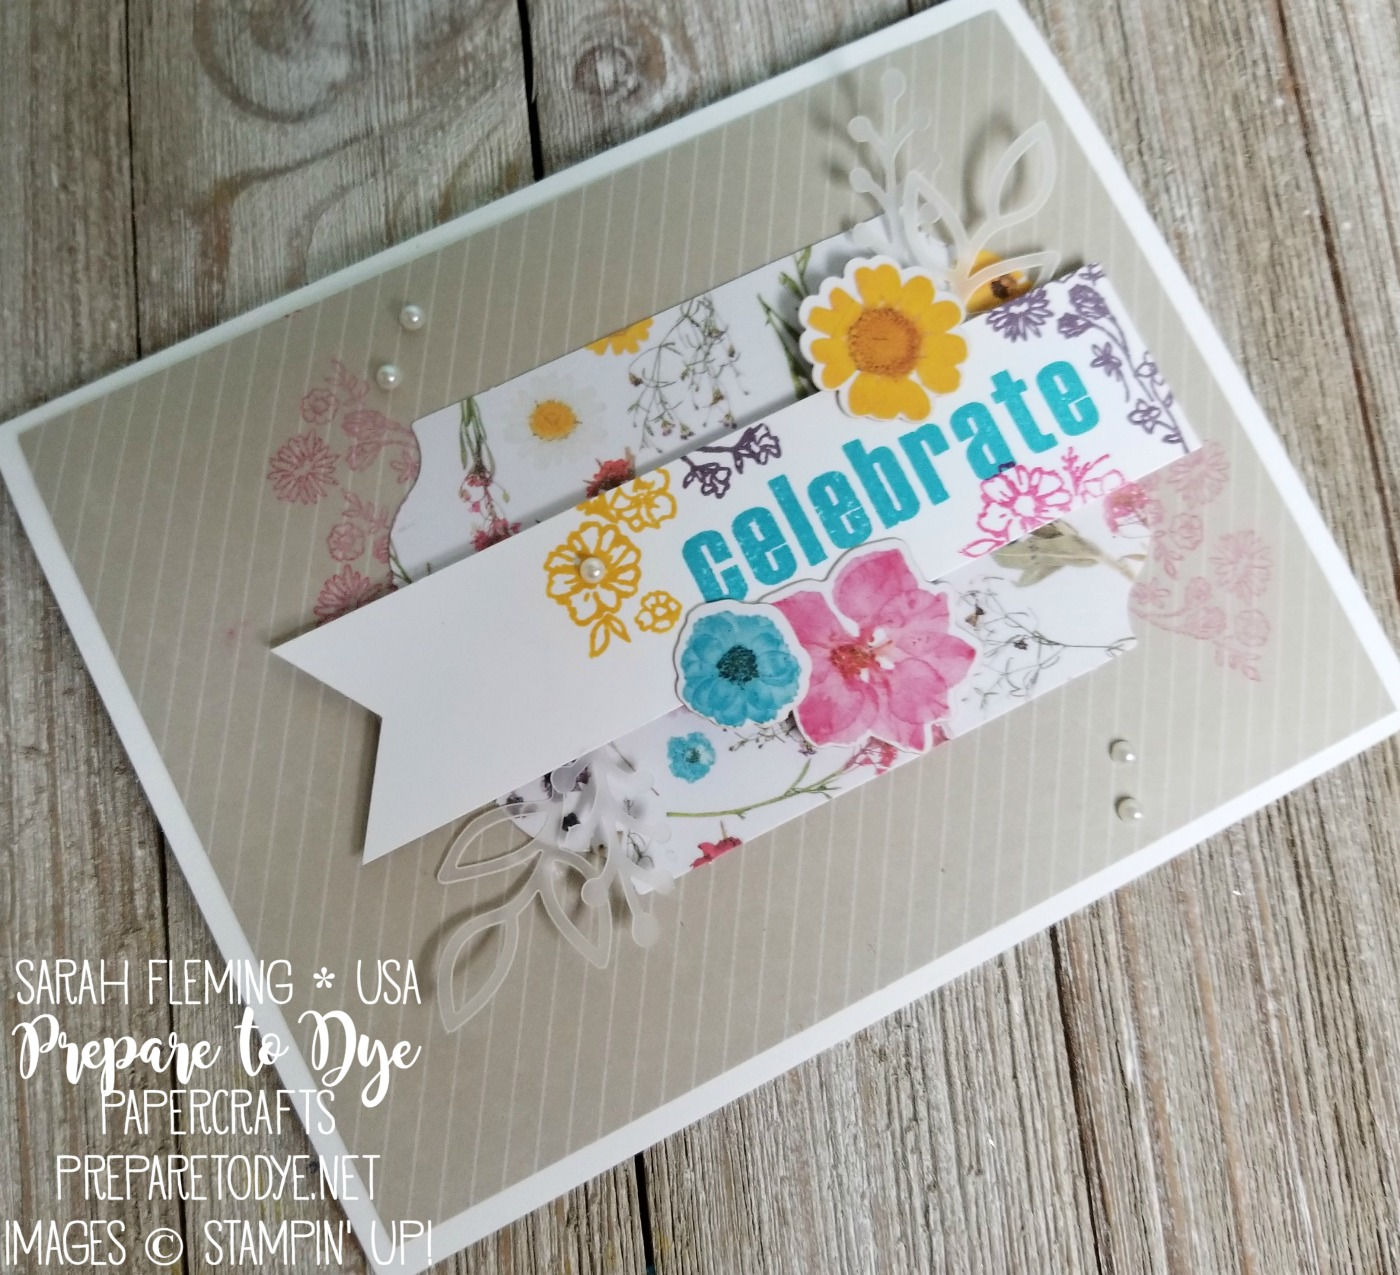 Stampin' Up! Paper Pumpkin monthly subscription box February 2018 kit - see blog post for alternate ideas for this kit - Sarah Fleming - Prepare to Dye Papercrafts